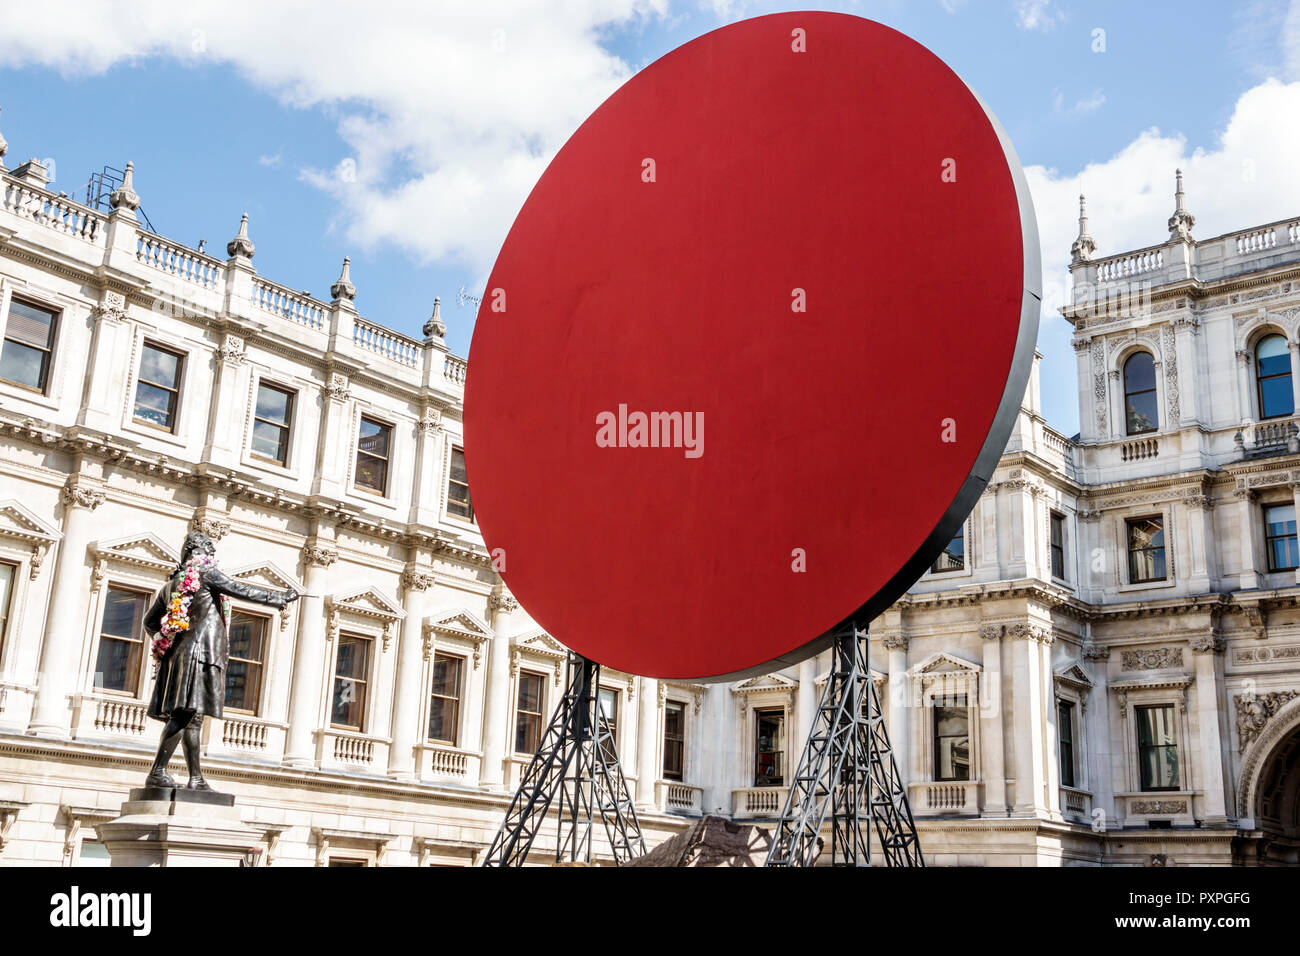 London England United Kingdom Great Britain Mayfair Piccadilly Burlington House Royal Academy of Arts courtyard installation contemporary sculpture An - Stock Image